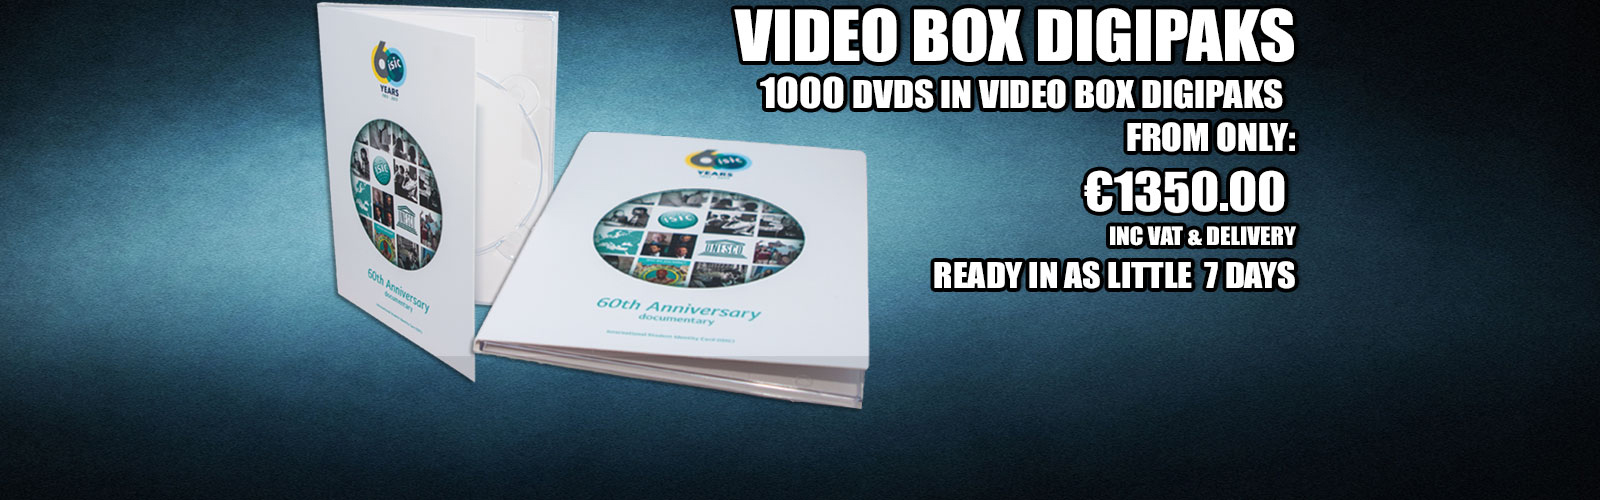 DVDs in Video Box Digipaks